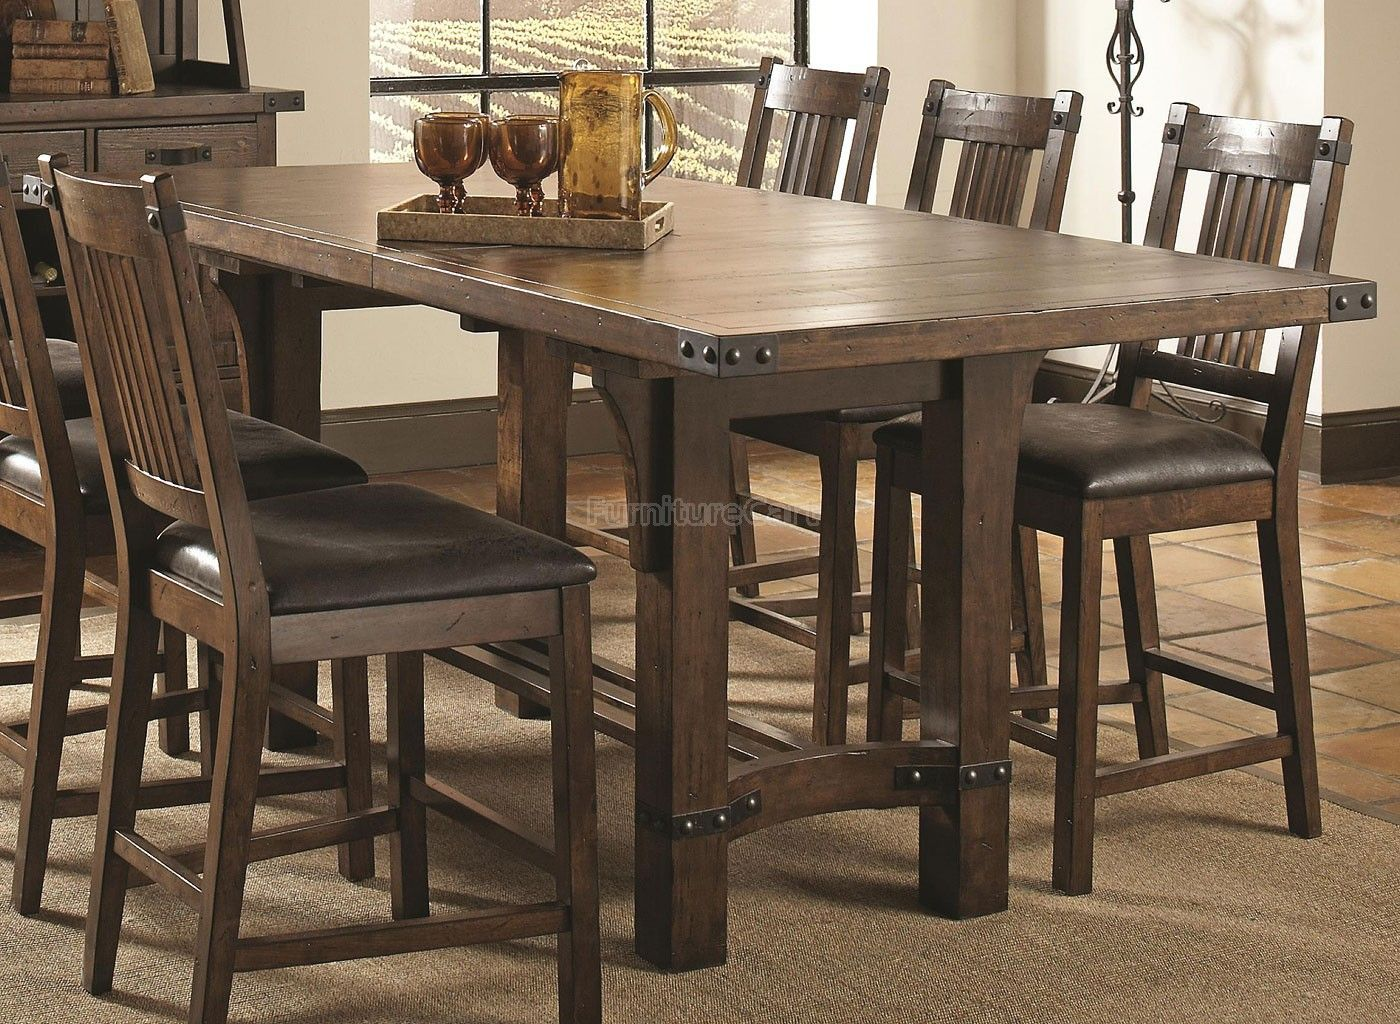 30+ Coaster counter height dining table Best Seller